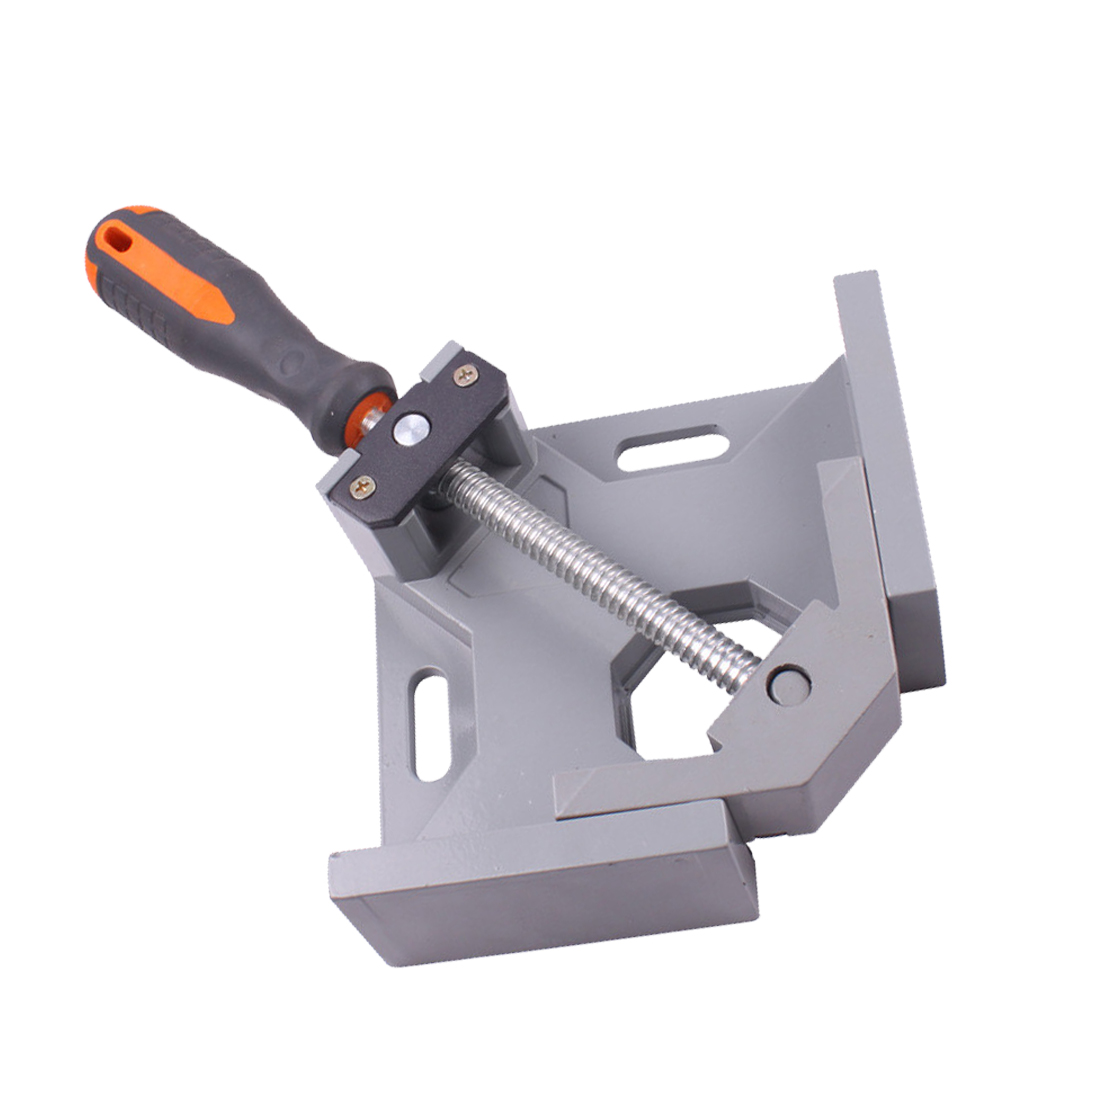 Hot!90 dgree Right Angle Carbide Vice Clamps Woodworking Clip Photo Frame Gussets Tools ninth world new single handlealuminum 90 degree right angle clamp angle clamp woodworking frame clip right angle folder tool